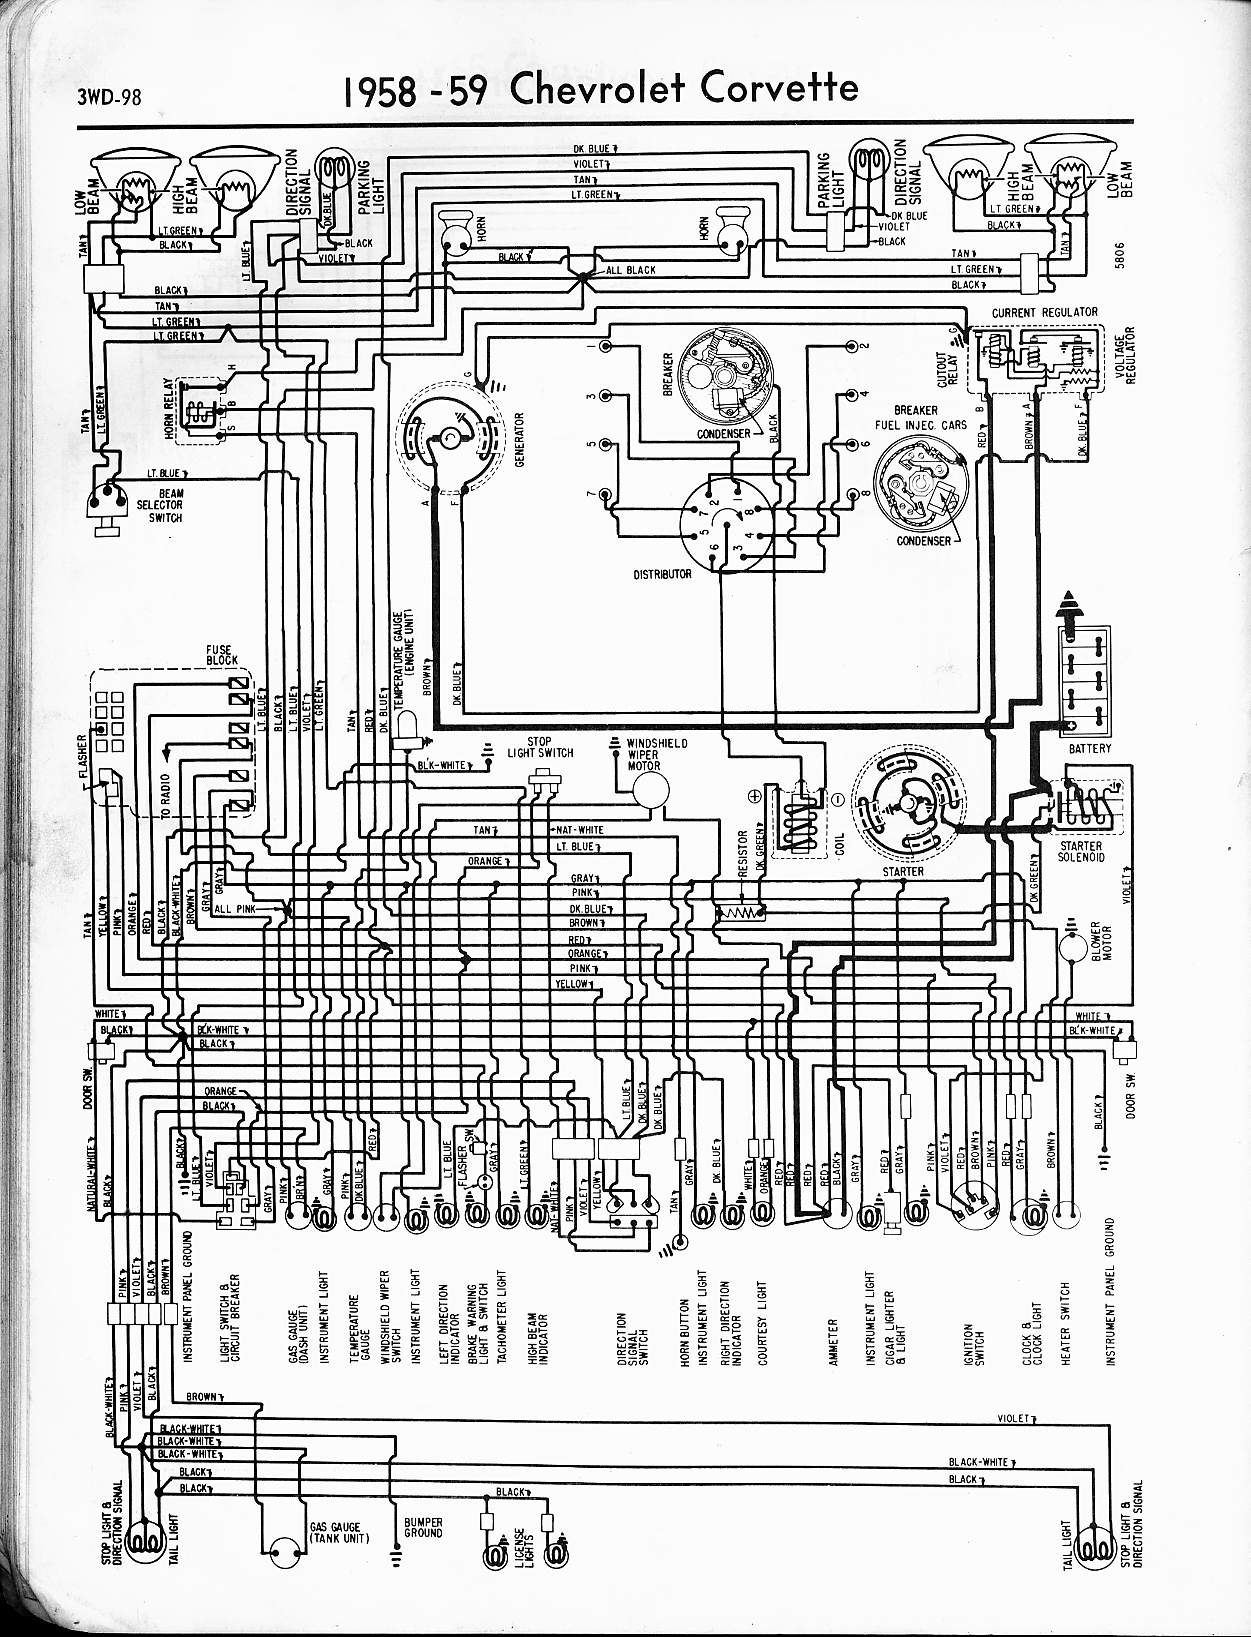 1969 Chevy Impala Wiring Diagram | Wiring Schematic Diagram on 1968 amc javelin wiring diagram, 68 chevelle ignition diagram, 1968 chevy impala wiring diagram, 1969 chevy camaro wiring diagram, 1968 pontiac catalina wiring diagram, 1968 jaguar xke wiring diagram, 1968 jeep cj5 wiring diagram, 1968 chevy c10 wiring, 1955 chevy bel air wiring diagram, 68 impala wiring diagram, 1968 chevy pickup wiring diagram, 1963 chevy nova wiring diagram, 1968 dodge dart wiring diagram, 1968 mustang tach wiring diagram, 1968 ford falcon wiring diagram, 1968 cadillac deville wiring diagram, 1968 chevy van wiring diagram, 1985 el camino ignition wiring diagram, 1968 oldsmobile cutlass wiring diagram, 1968 chevy c10 fuse block,